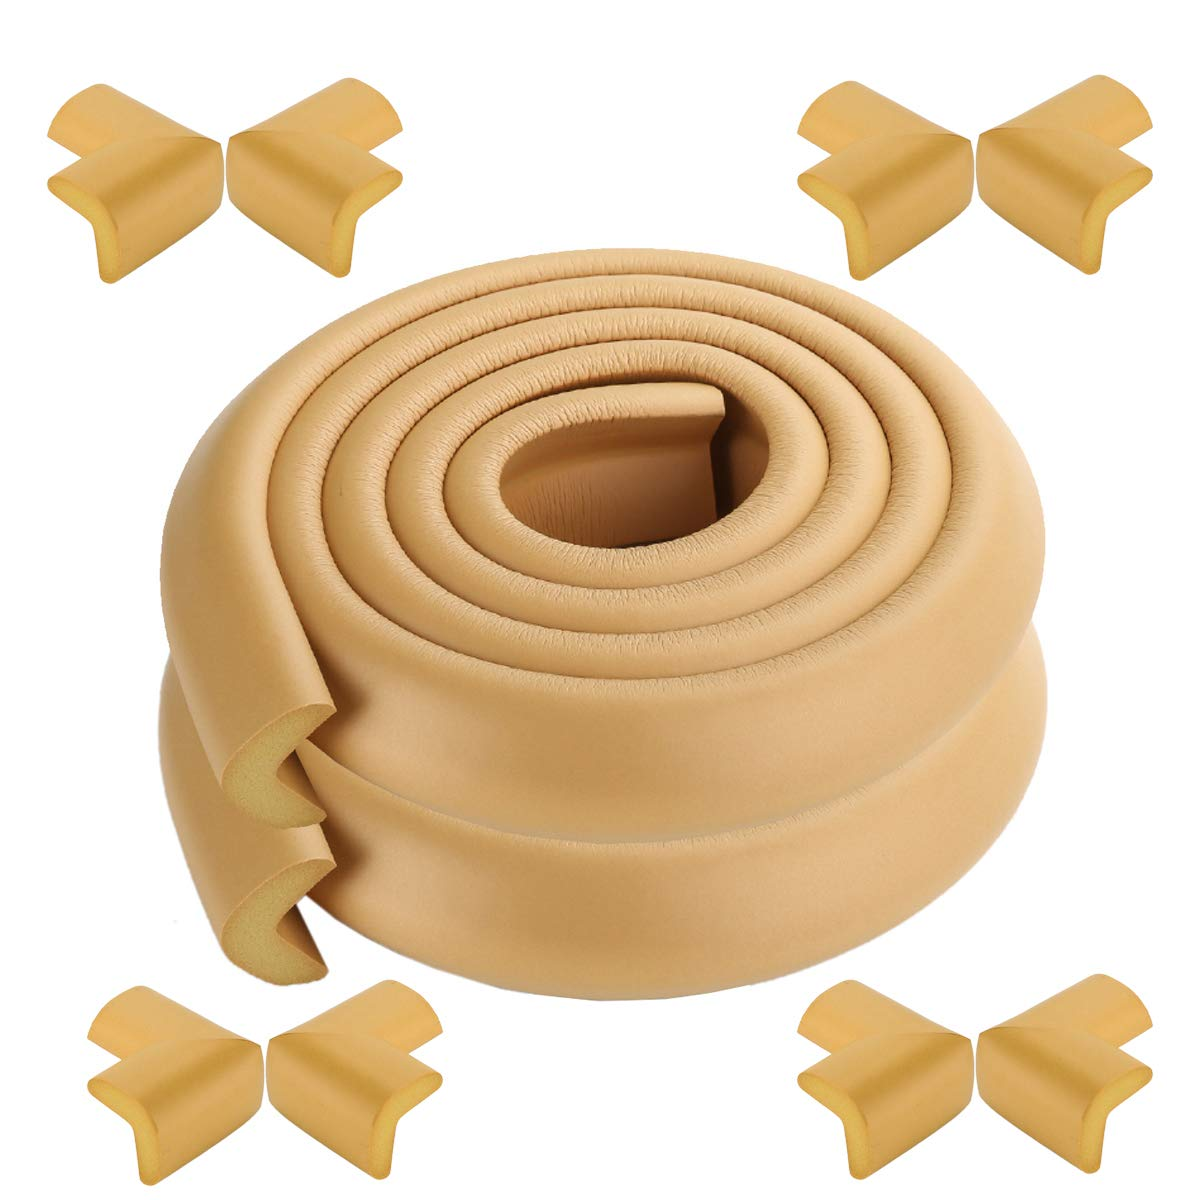 X-Loves 2 Meter L-Shape Edge Protector and 4 x Corner Guards Set, Easy to Install, Premium high Density Foam Baby Protective Household Tool for Table, Bench and Other Home Furniture - Colour Khaki Guju